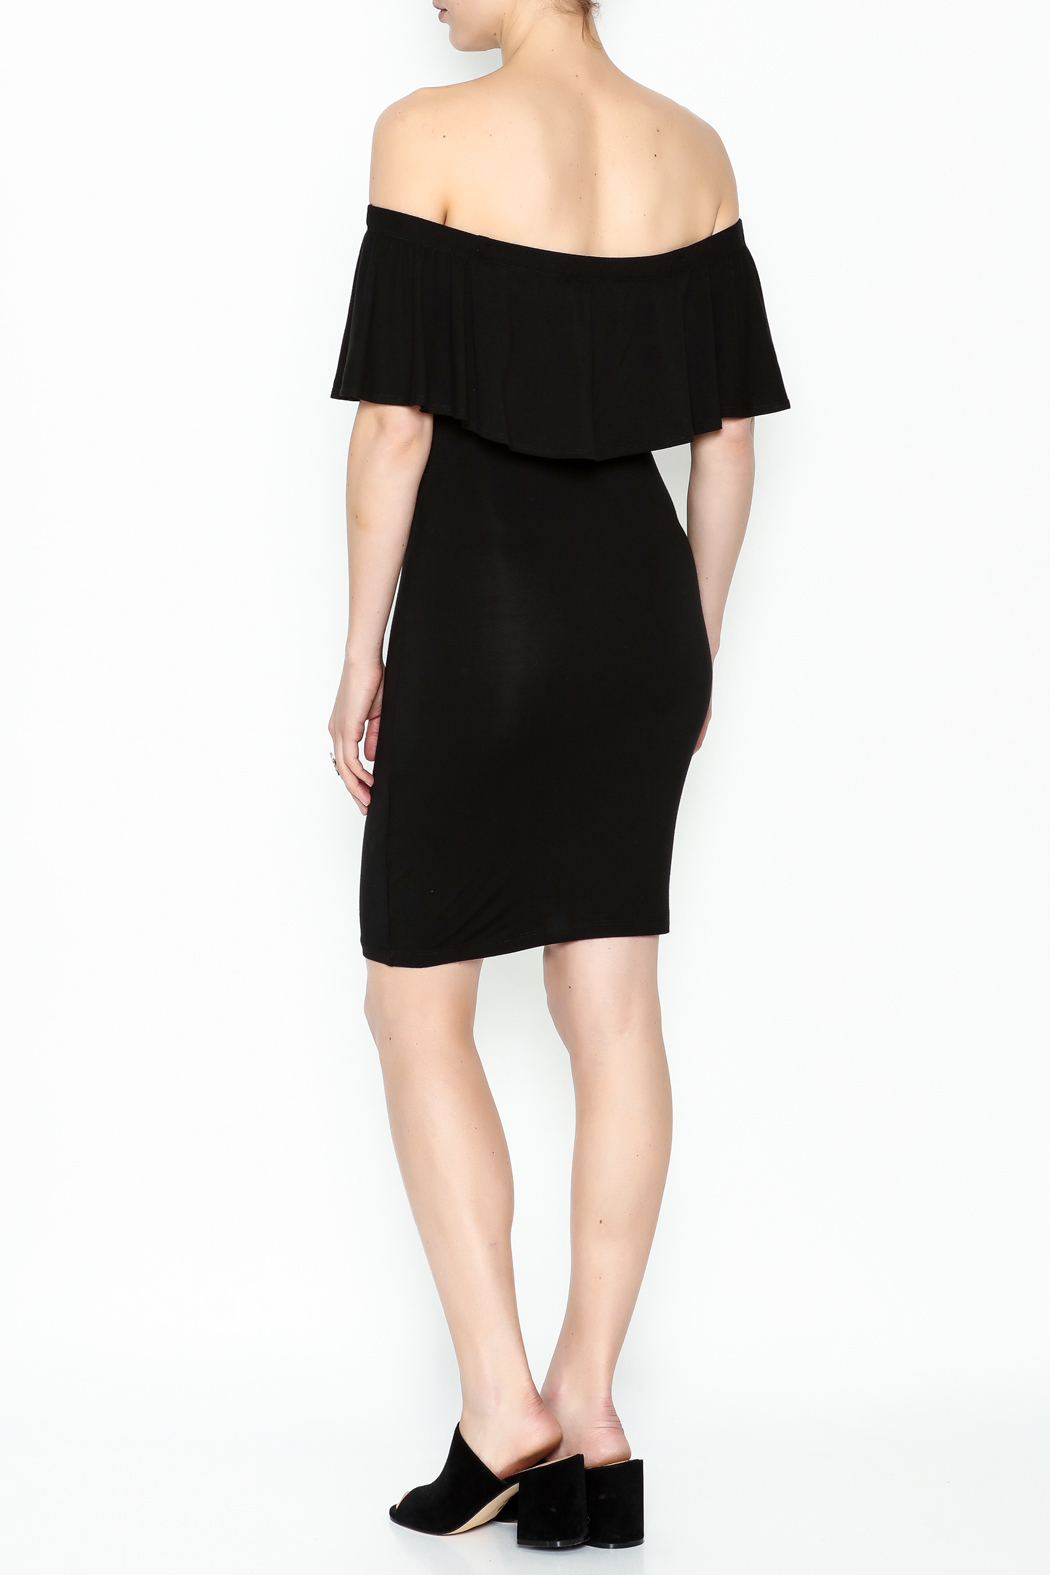 Audrey 3+1 Off Shoulder Cindy Dress - Back Cropped Image